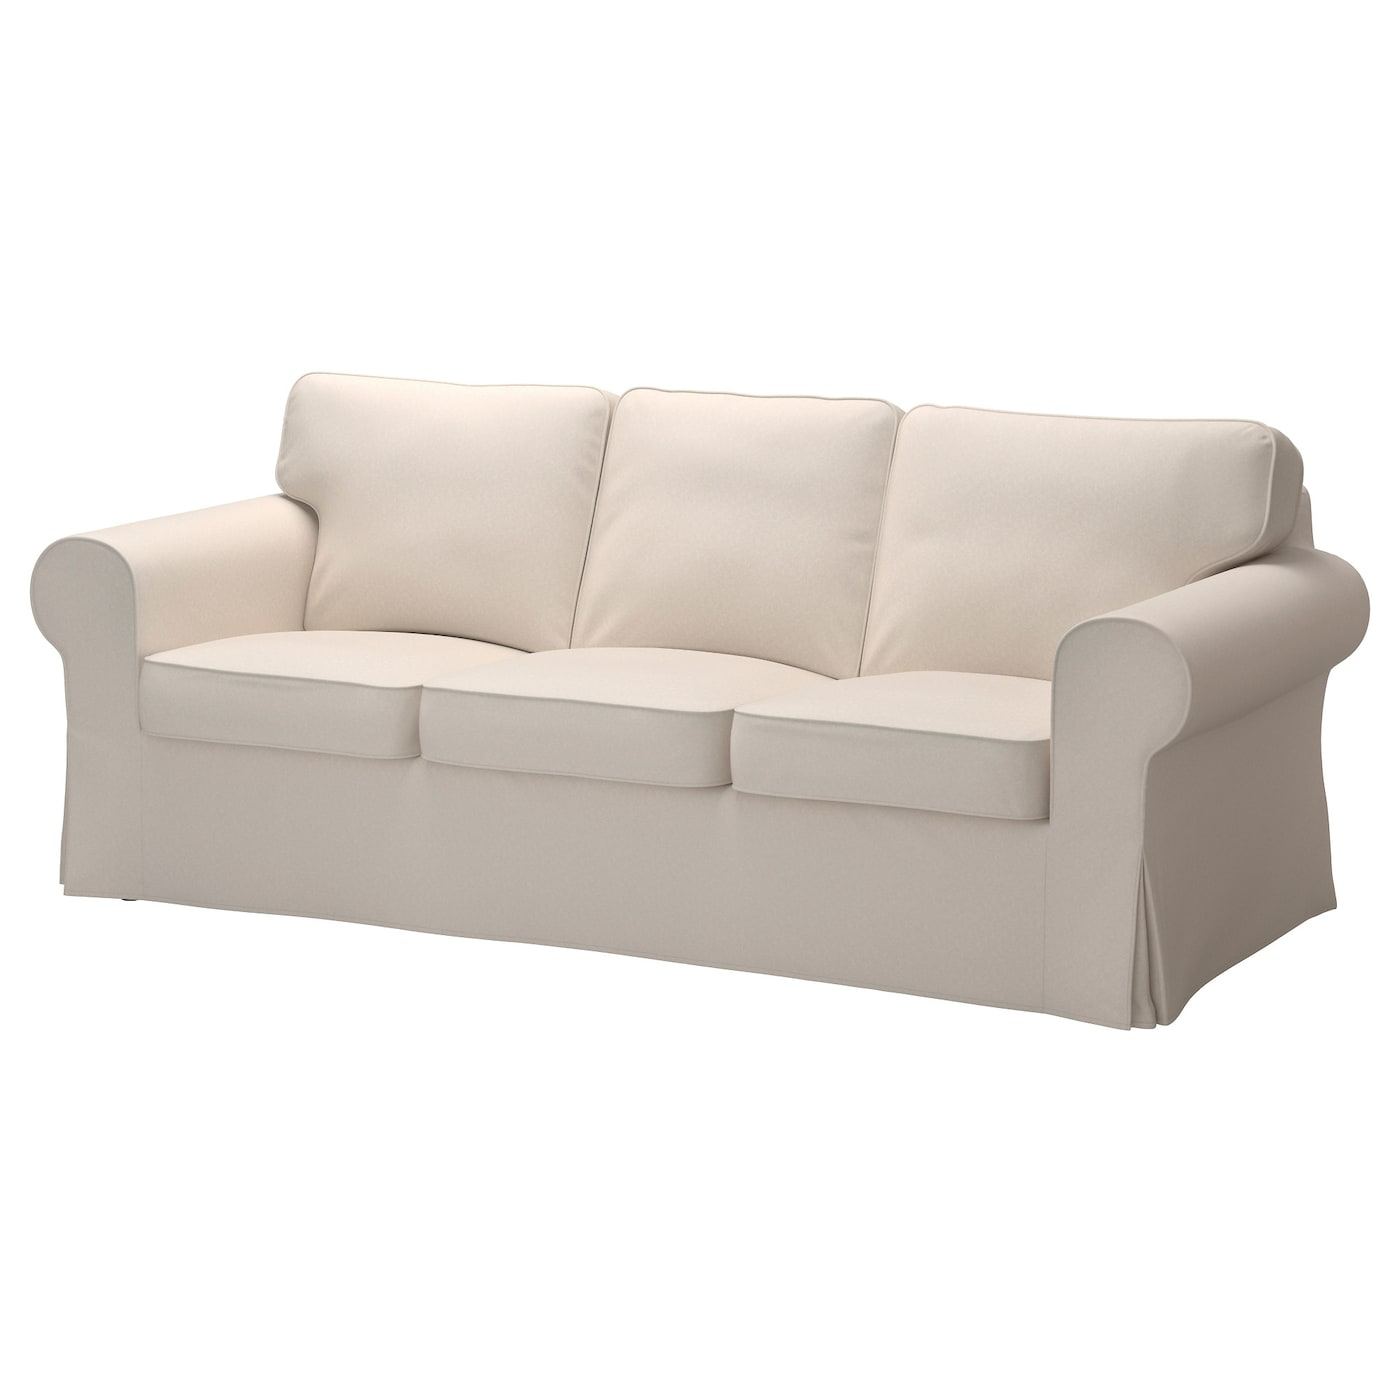 ektorp three seat sofa lofallet beige ikea. Black Bedroom Furniture Sets. Home Design Ideas